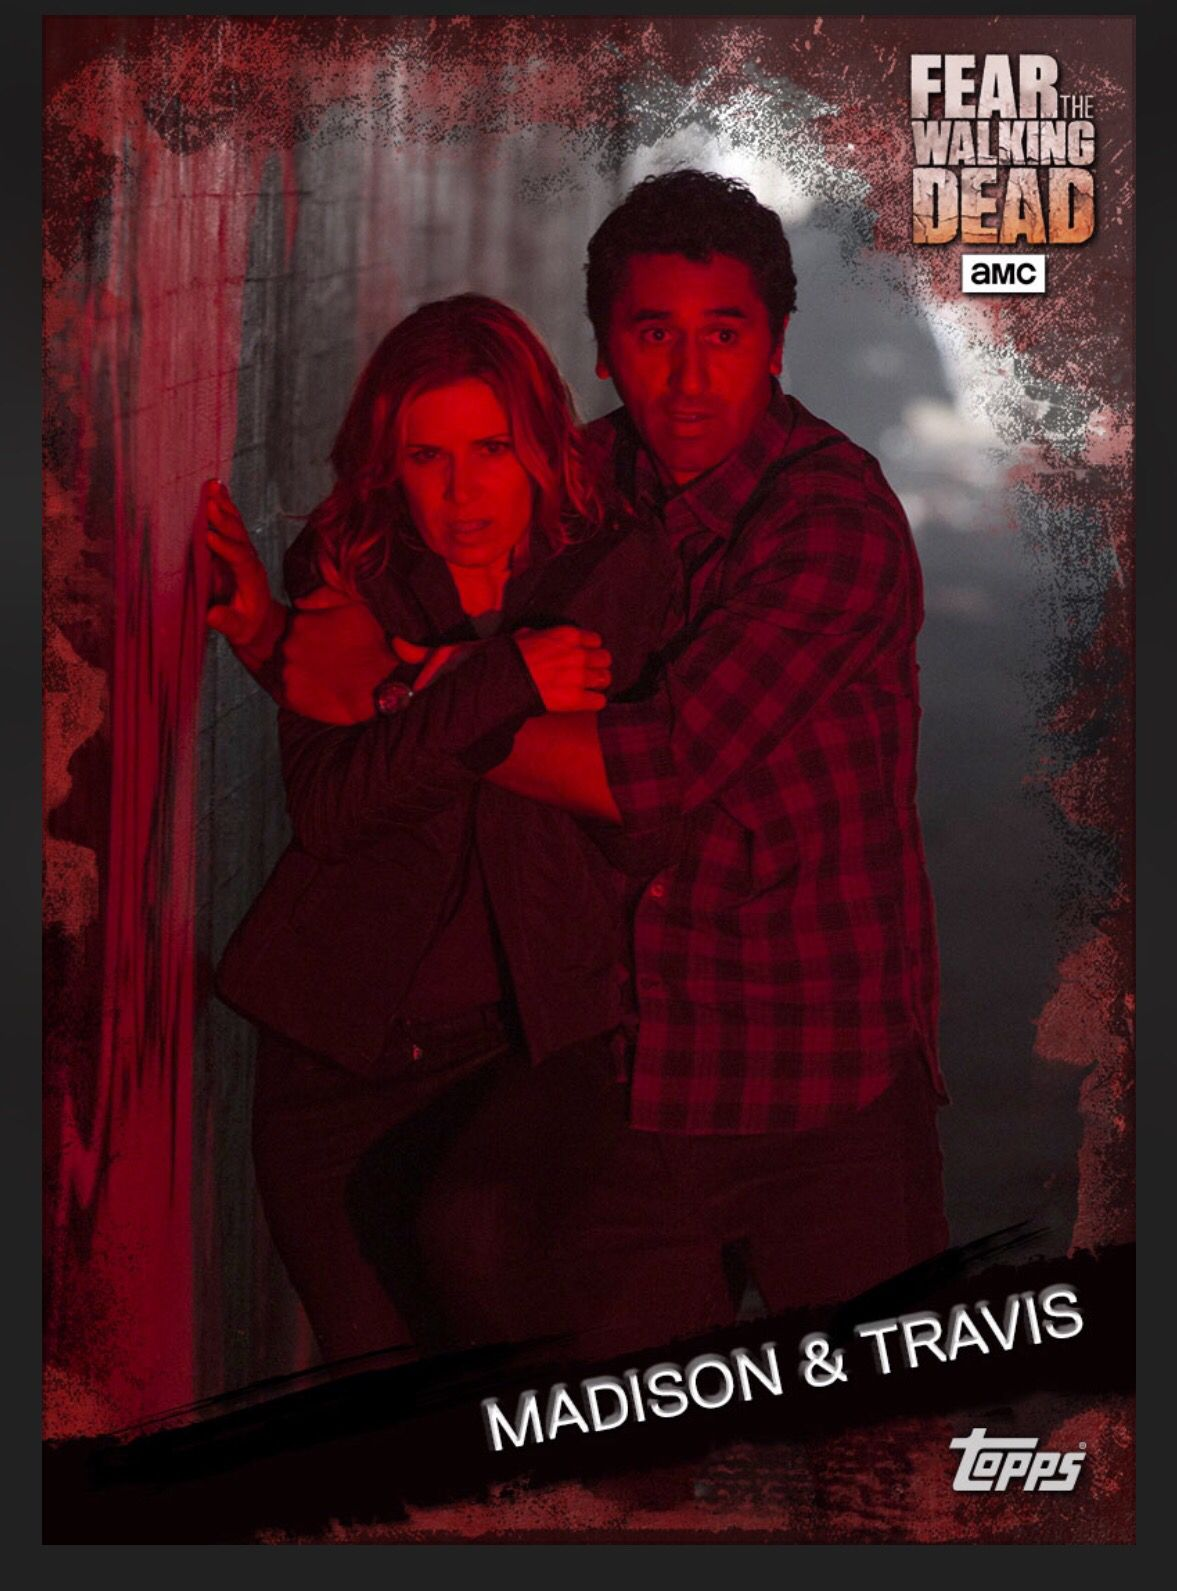 FEAR 302 RED+BLUE SET-12 CARDS-TOPPS FEAR THE WALKING DEAD CARD TRADER